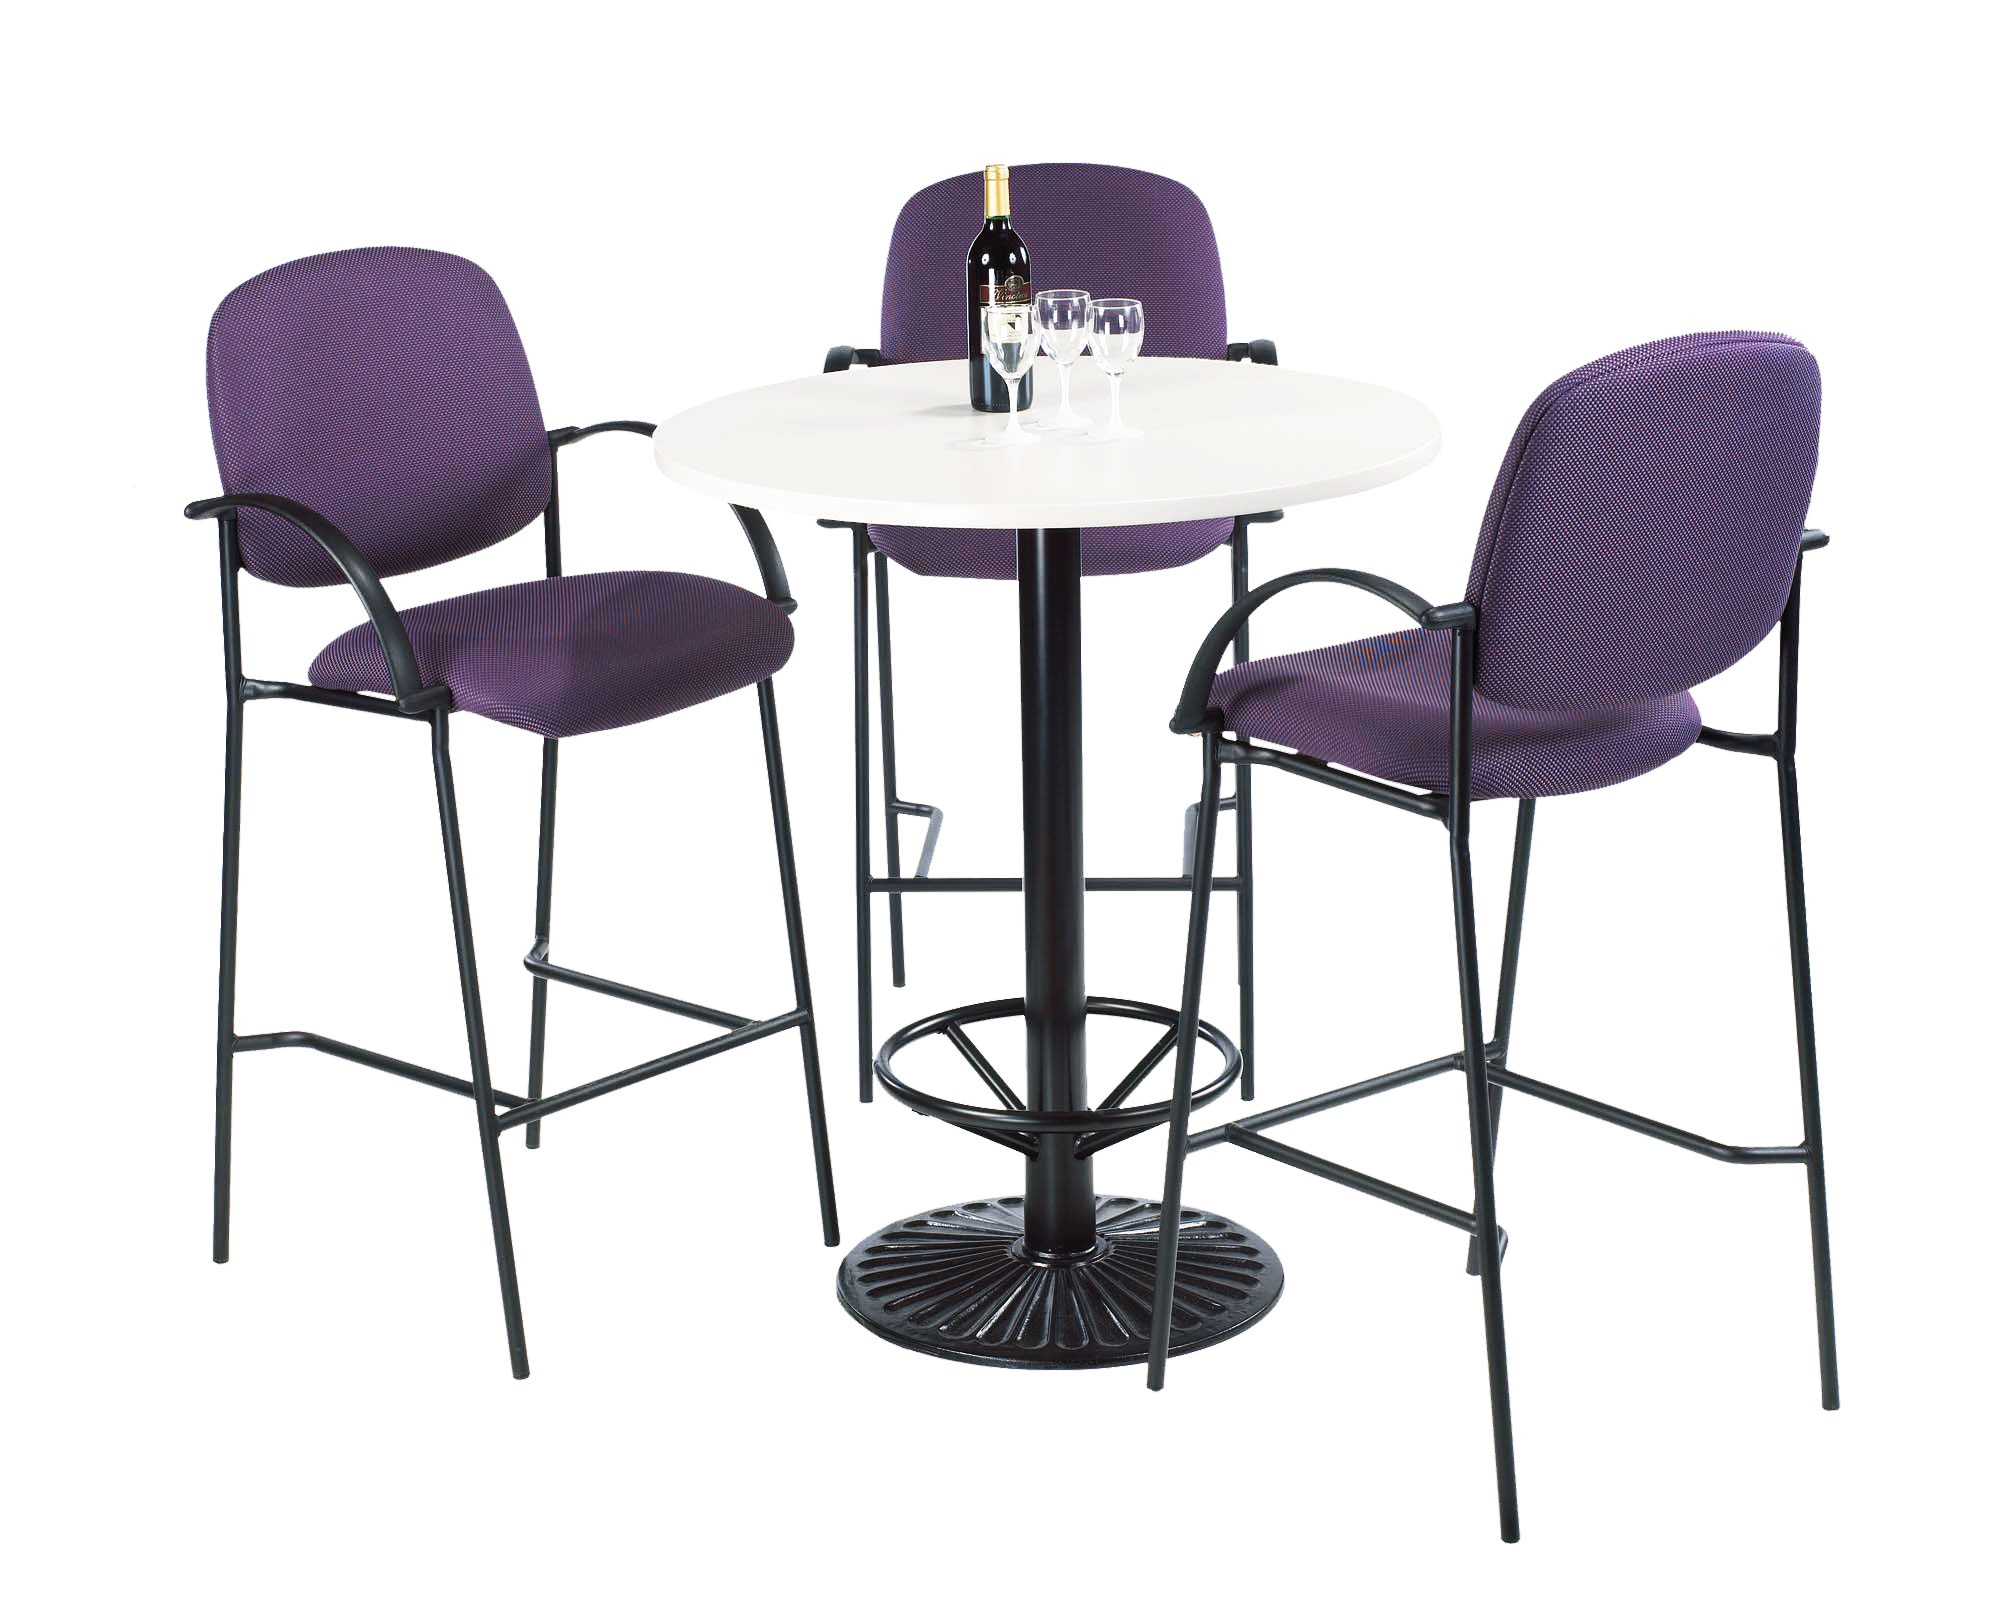 LDF Bistro/Bar height table-#RD 36-1750-42-FR-18